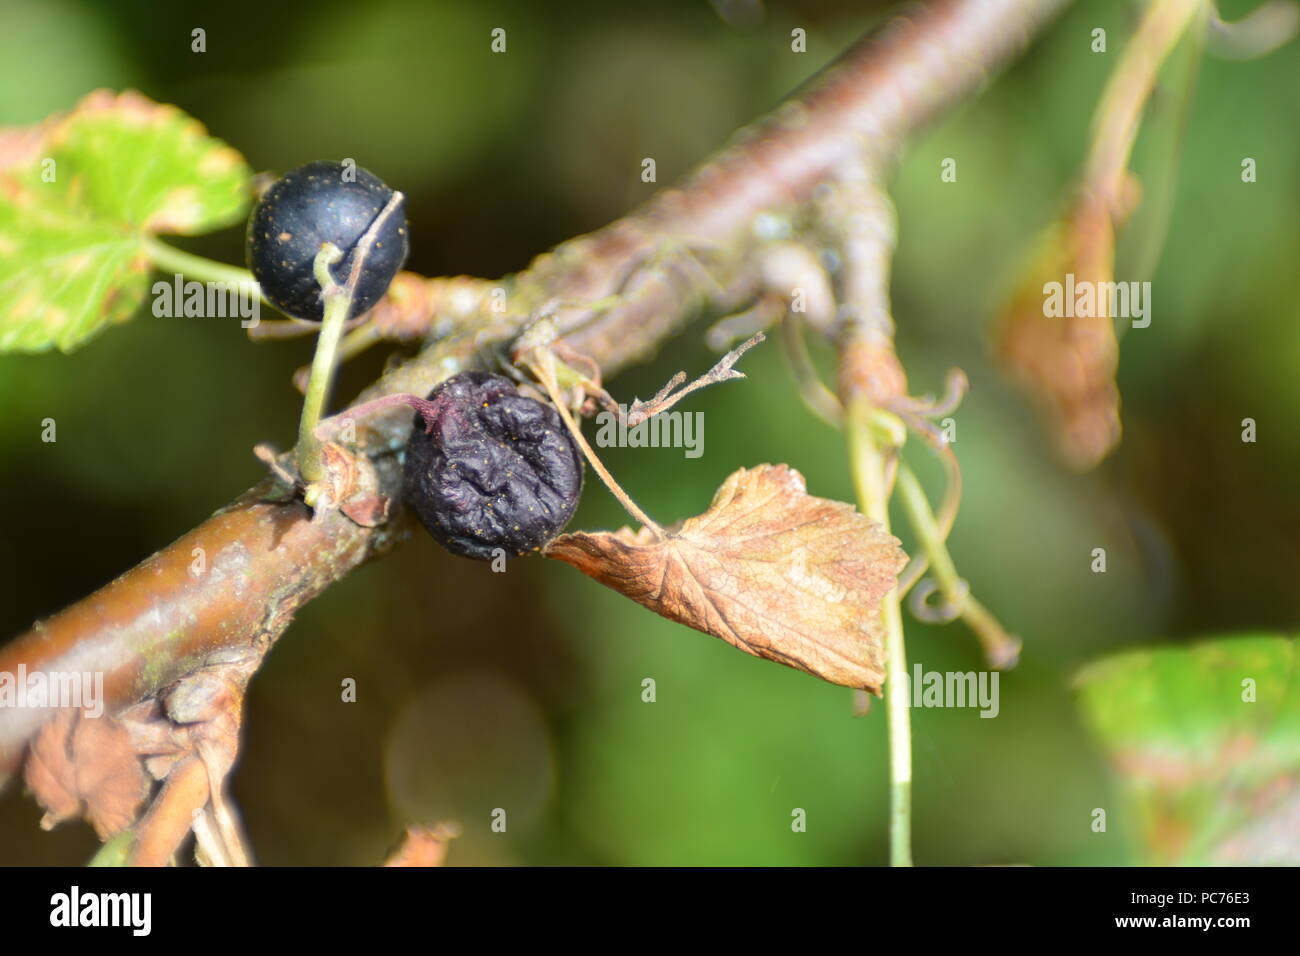 Black dried berries with brown leaves on the branch - Stock Image